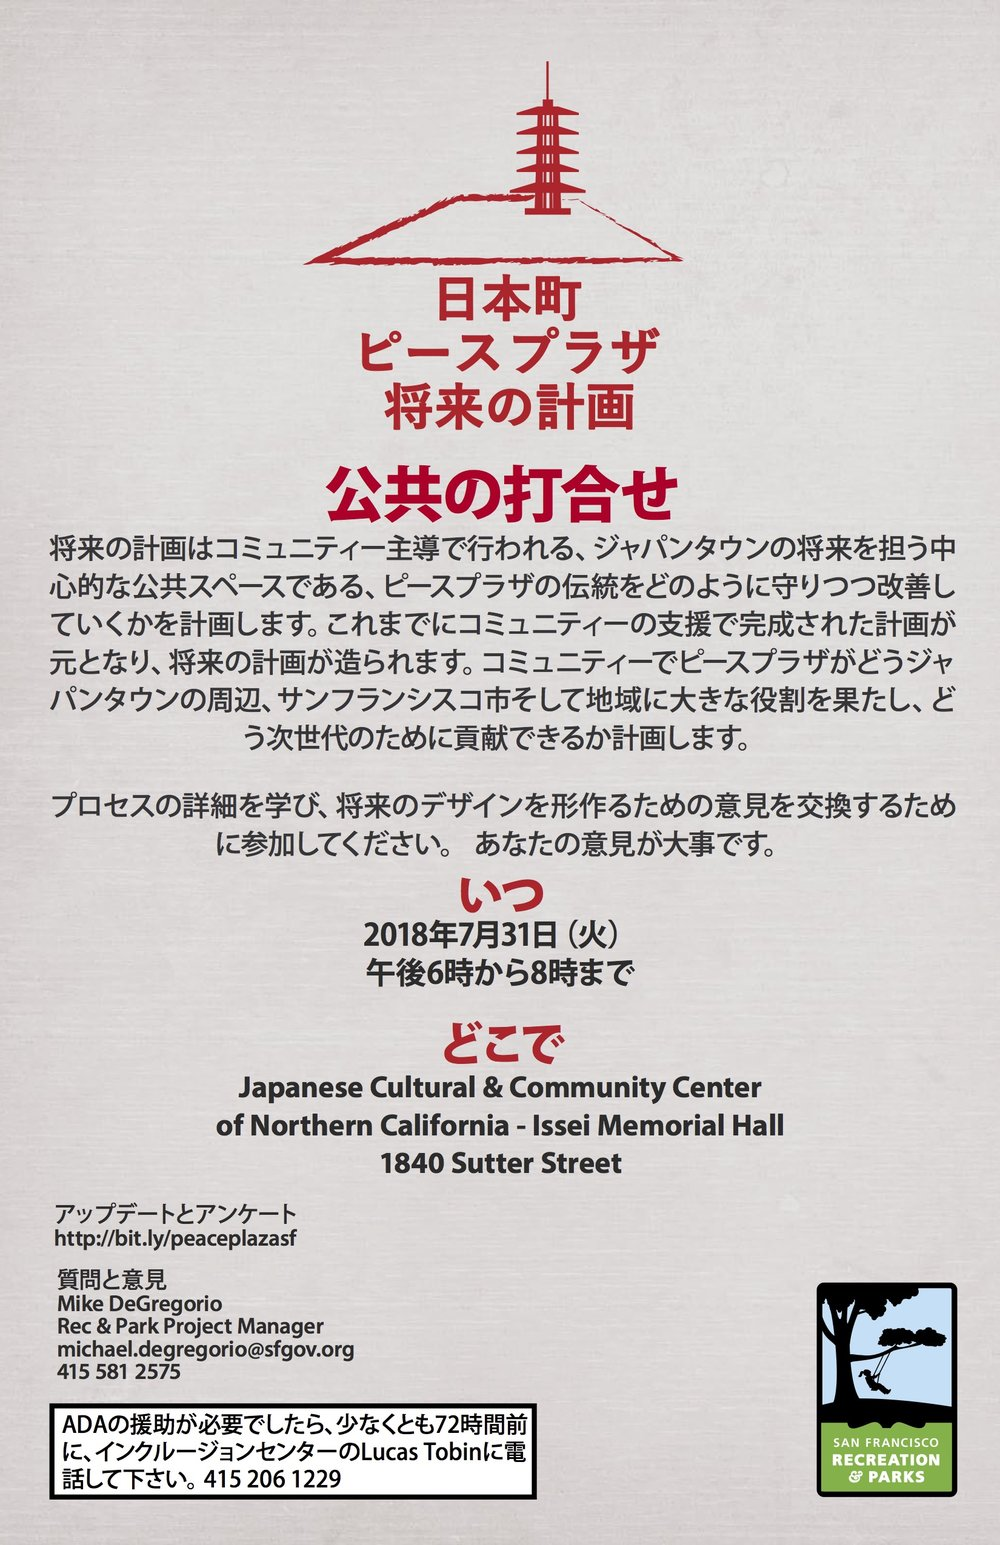 Community Meeting nihongo.jpg